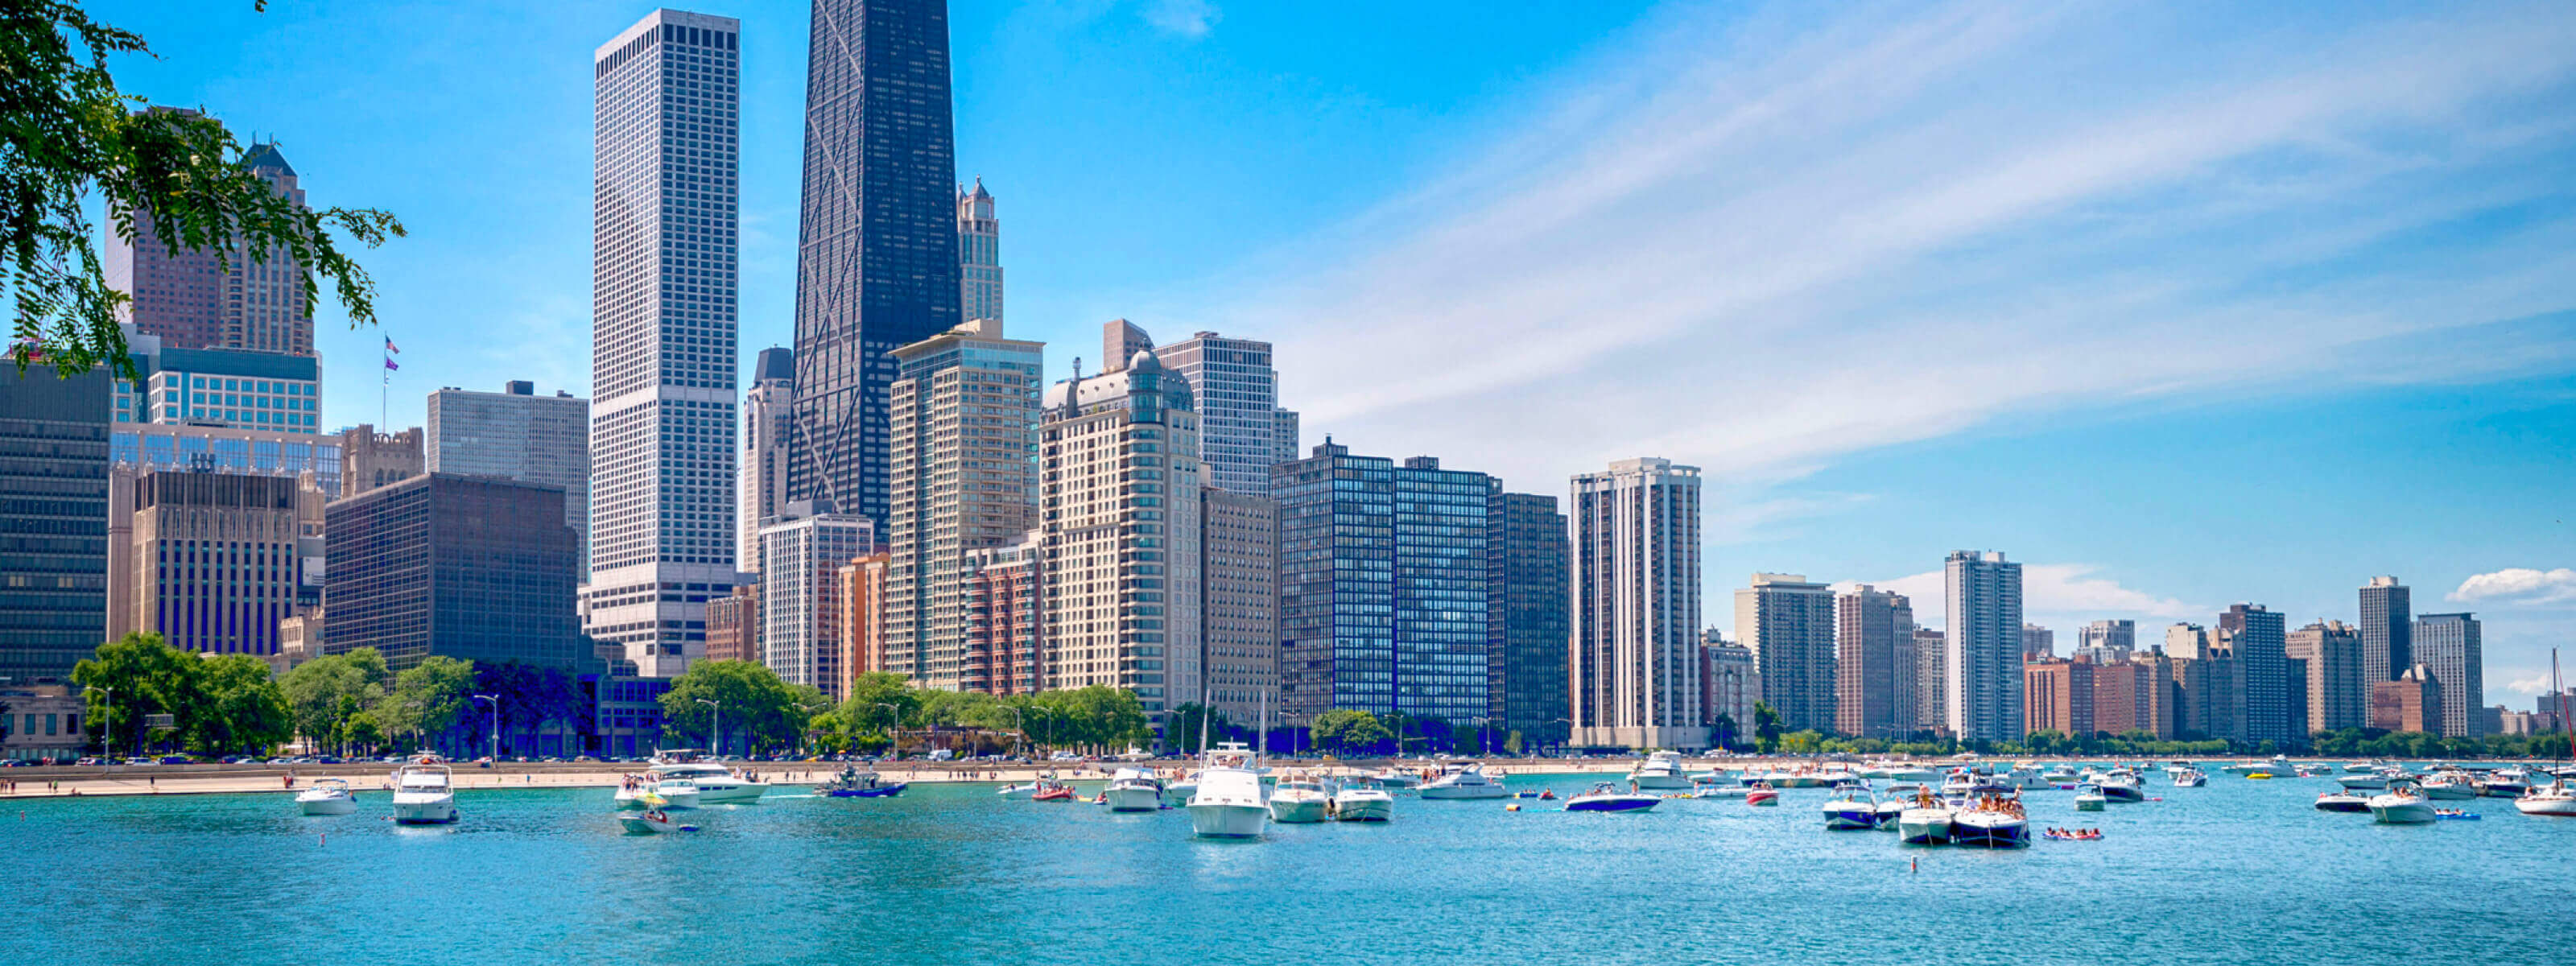 YachtLife's top Yachting Activities in Chicago - Lake Michigan